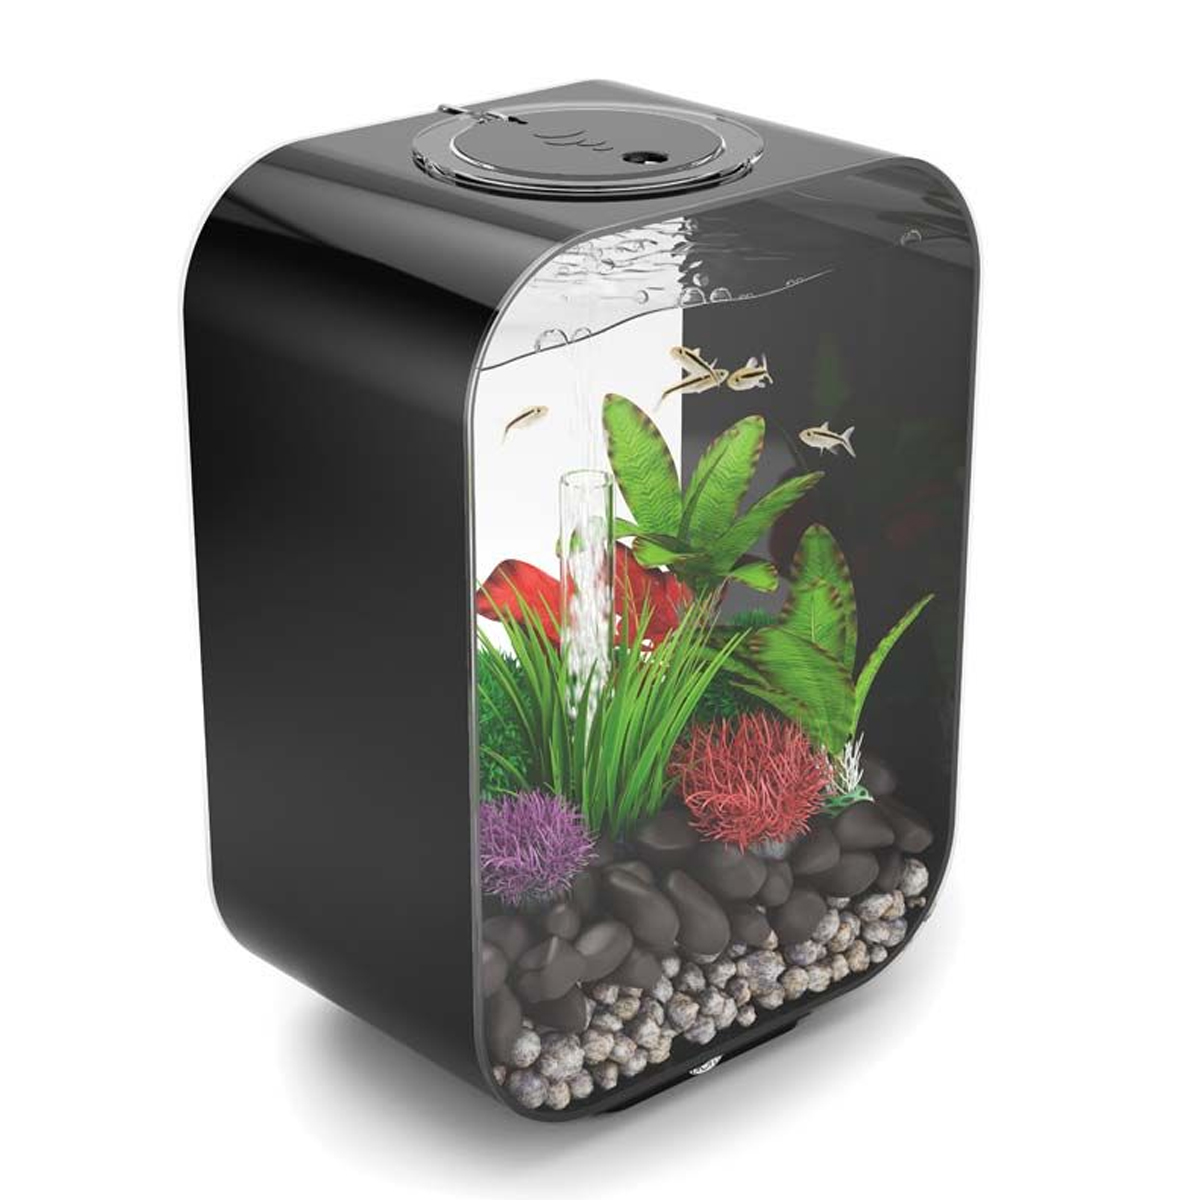 biorb life 15l black aquarium with standard led lighting. Black Bedroom Furniture Sets. Home Design Ideas